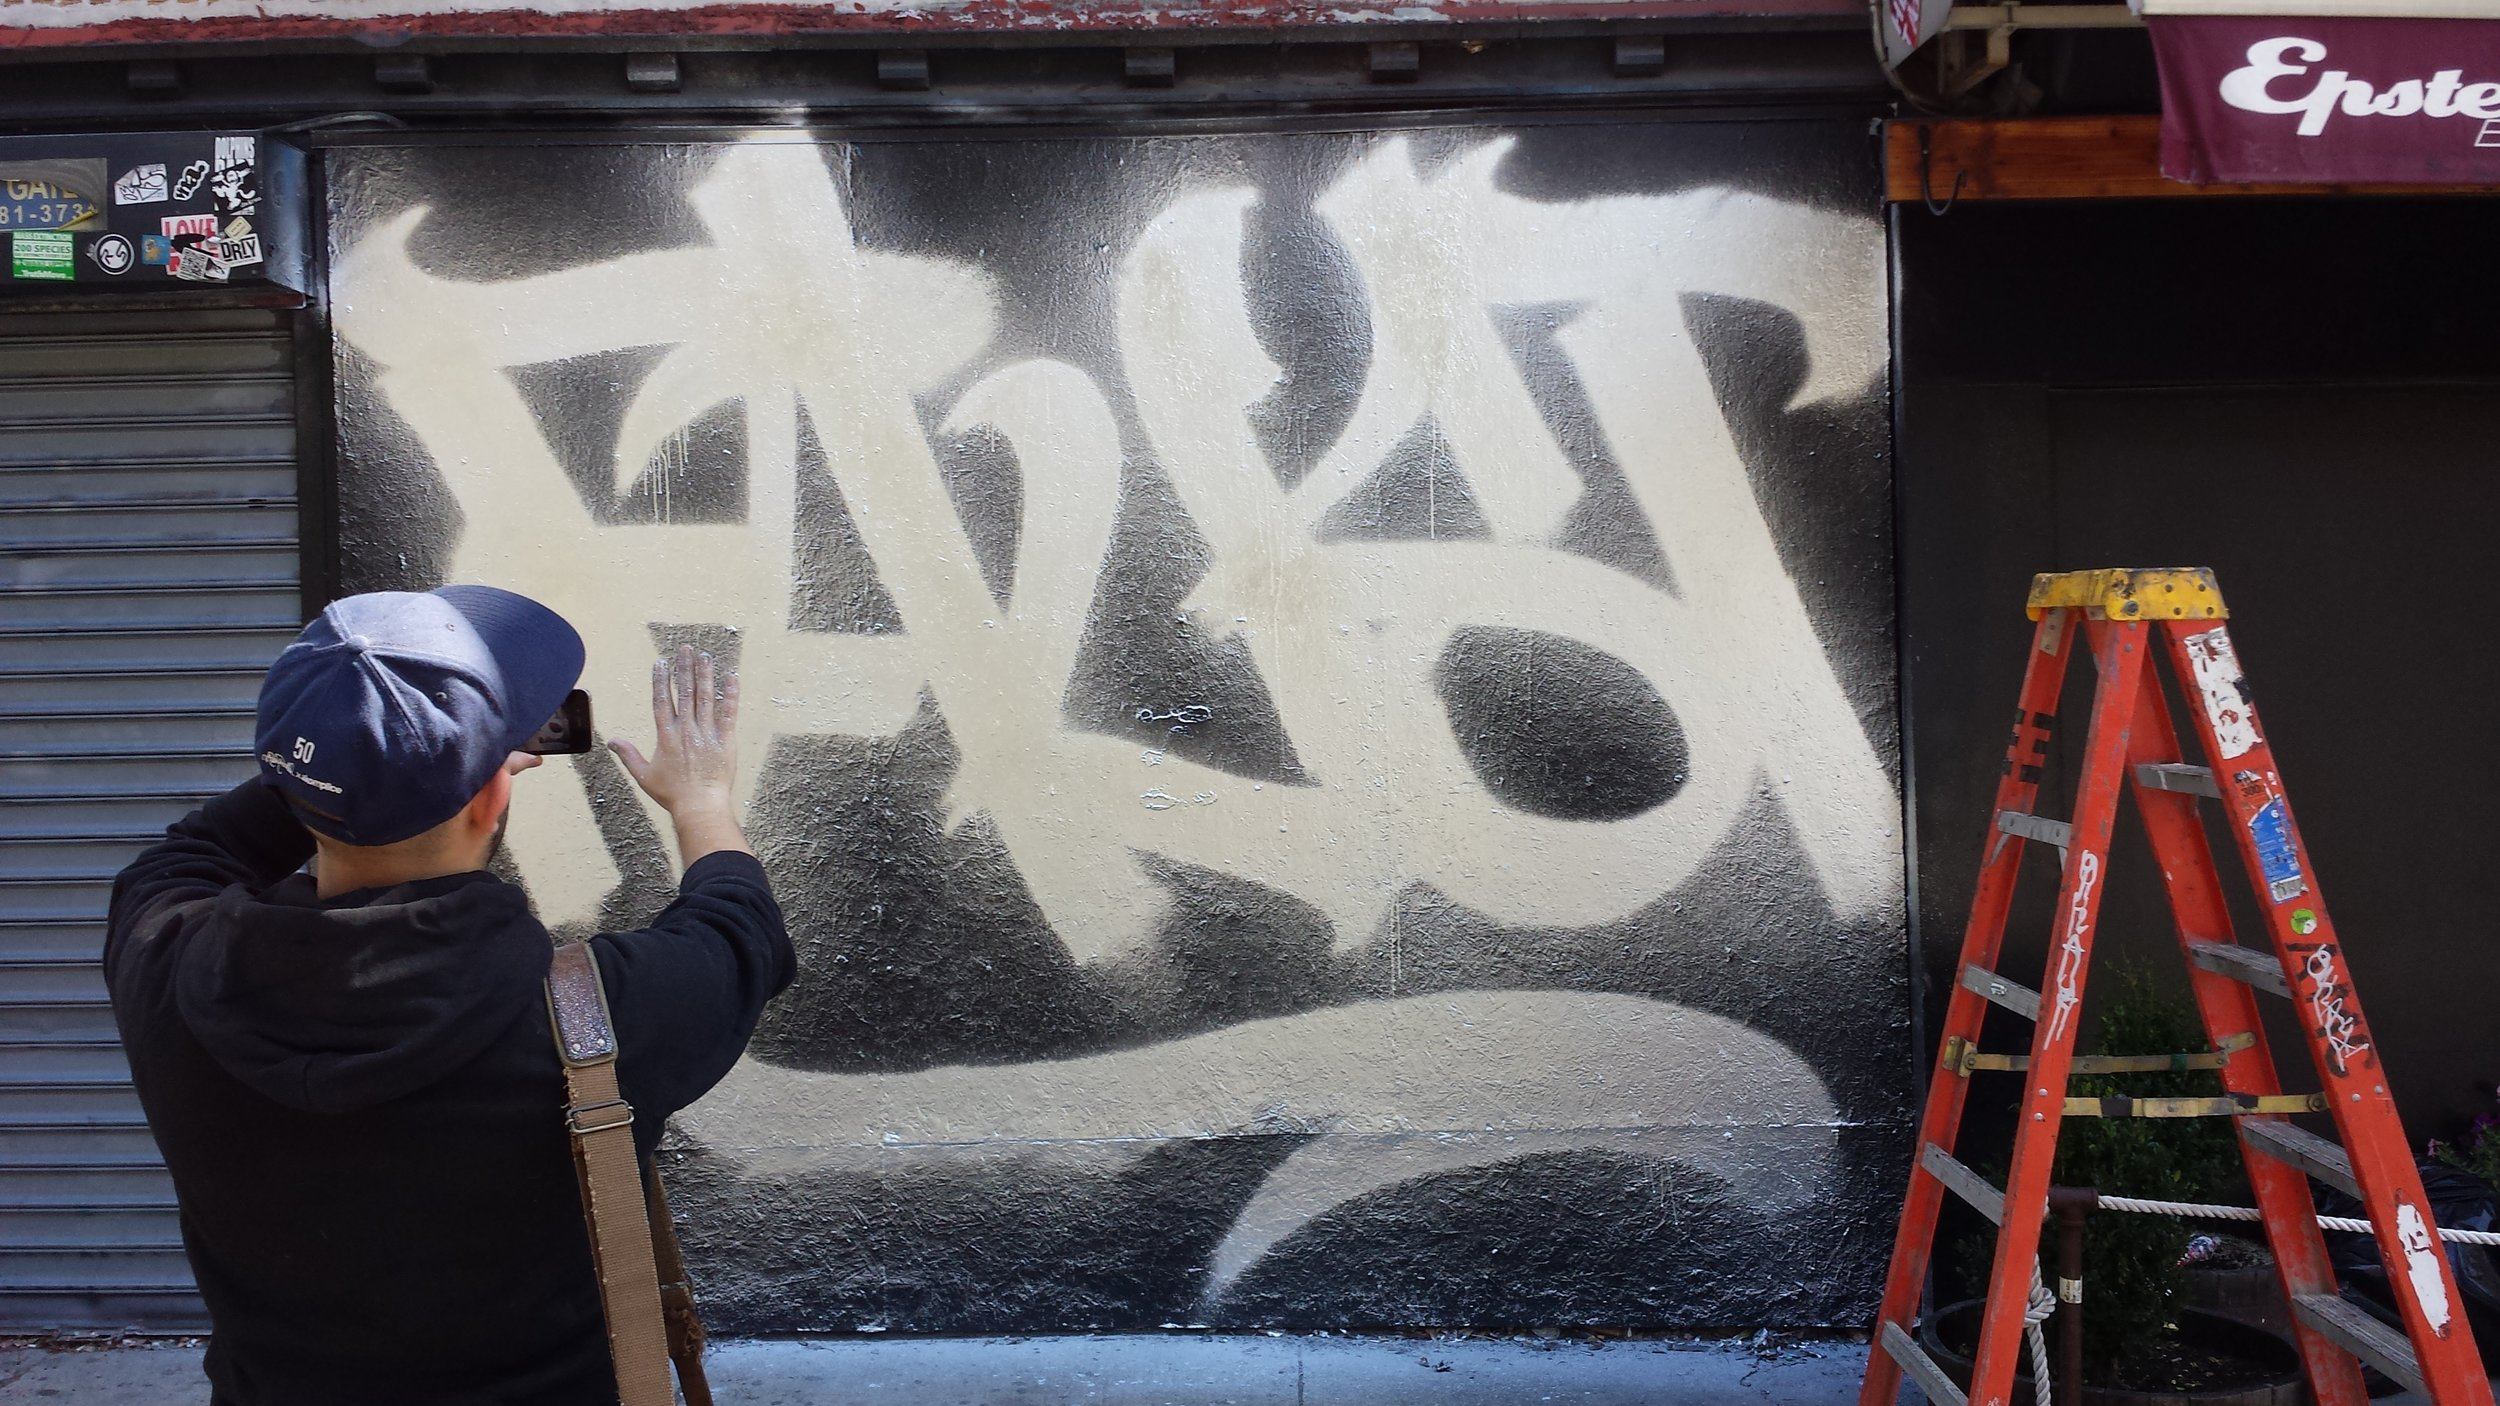 Faust using the new wide spray can L.E.S. September '14